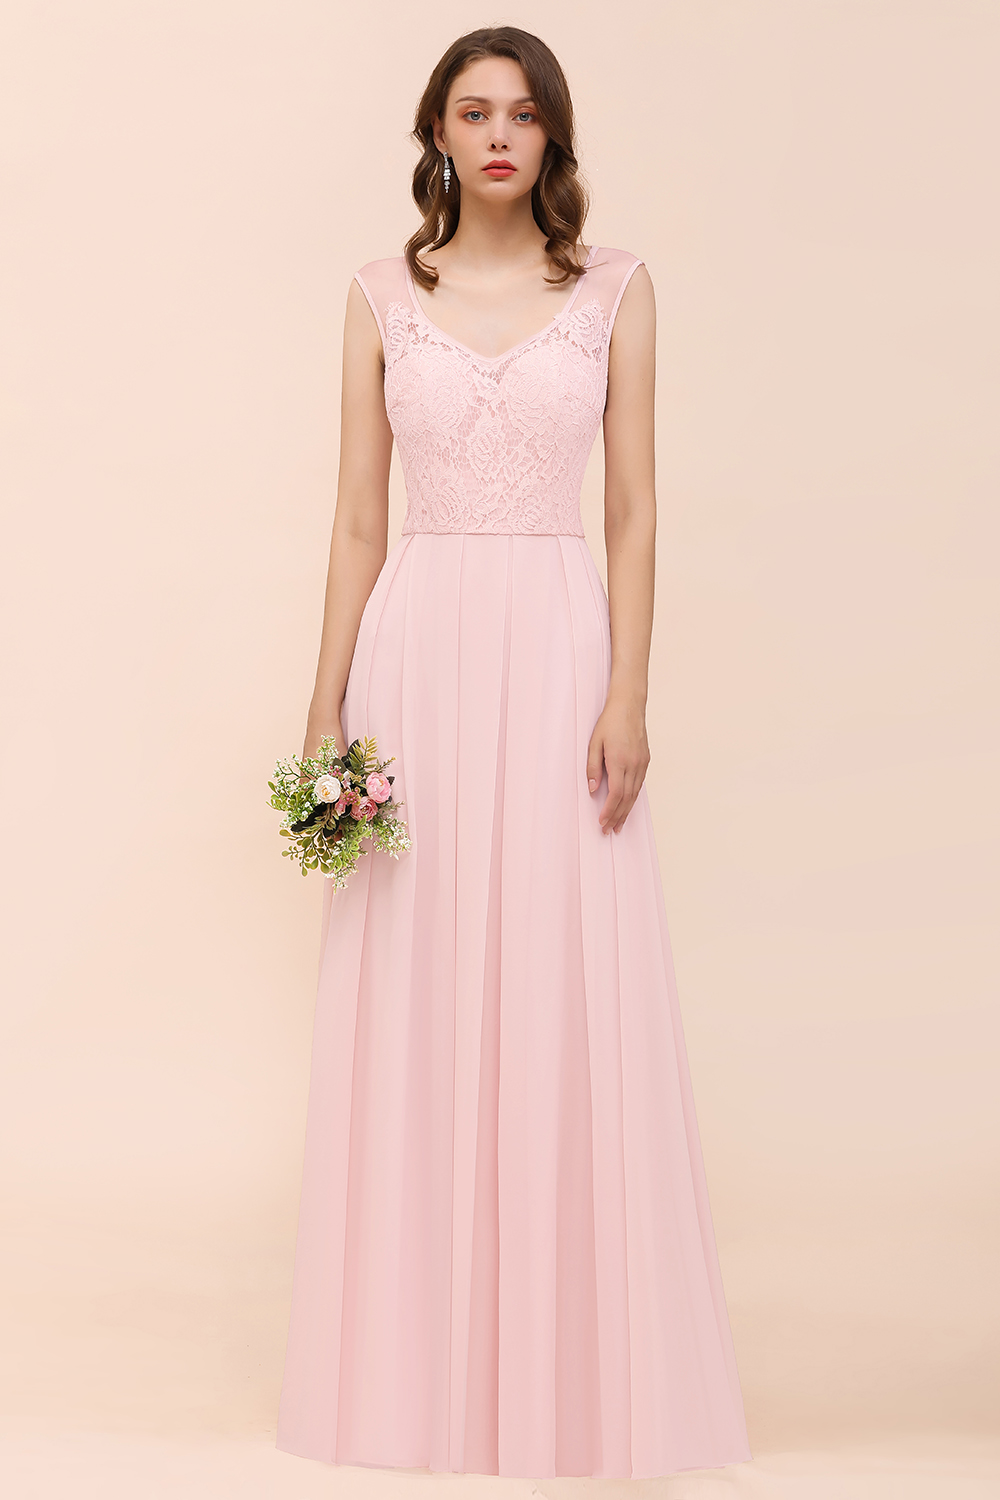 BMbridal Elegant Pink Lace Straps Ruffle Affordable Bridesmaid Dress